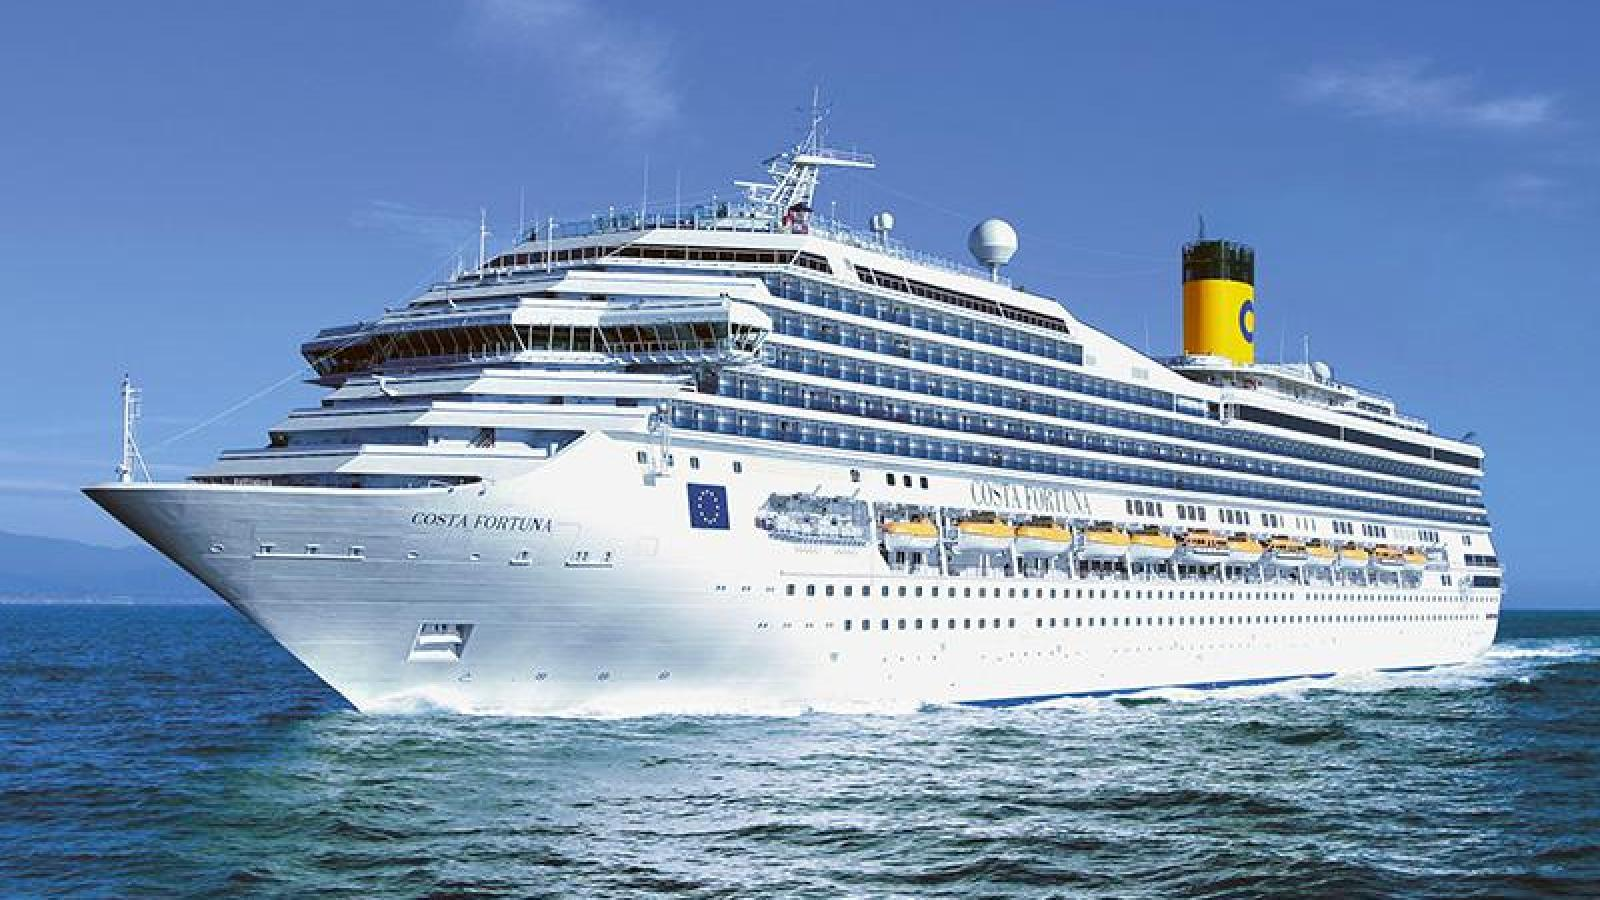 COSTA CRUISES EMPLOYMENT